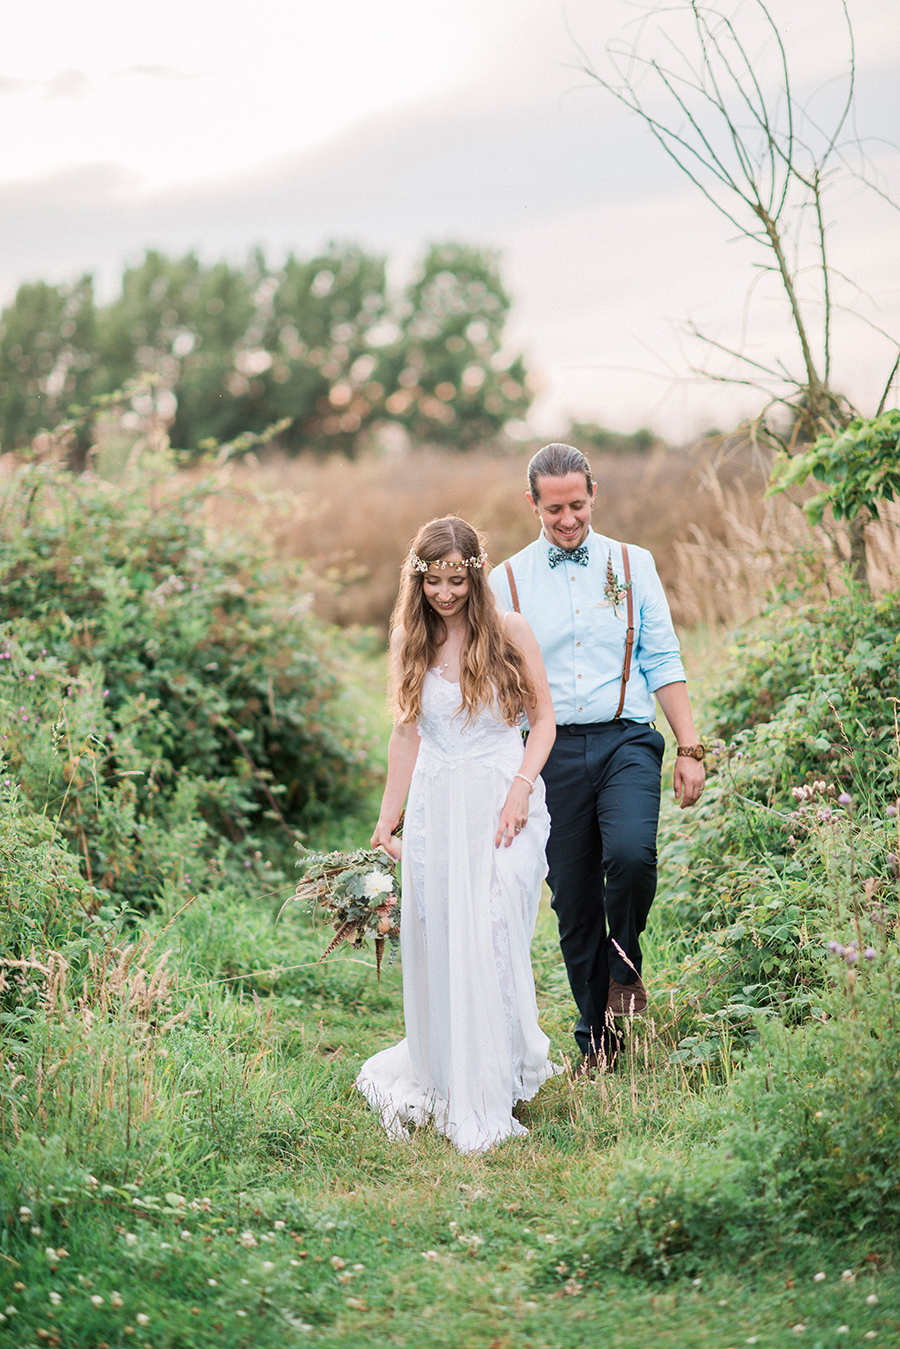 Dreamy boho wedding at Houchins Farm with images by Kathryn Hopkins Photography (44)